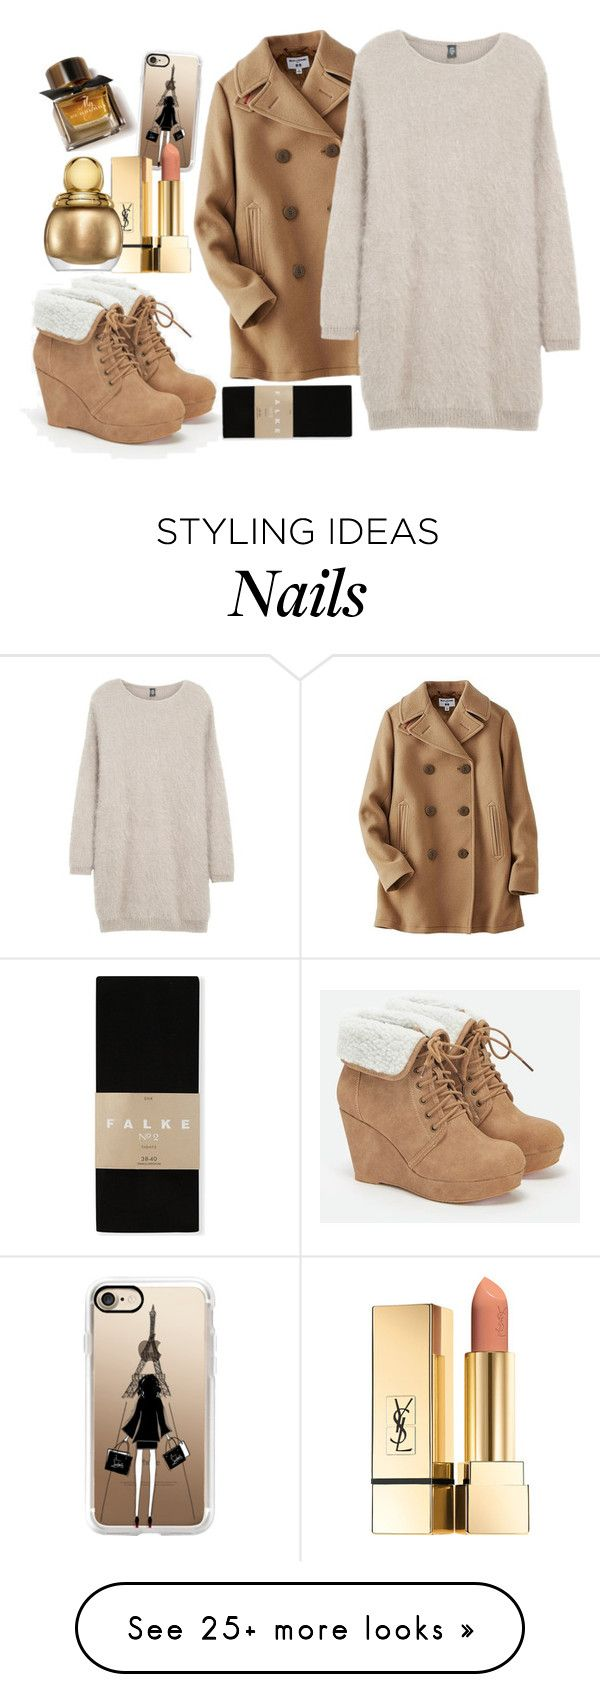 """""""Cozy brown 2"""" by meta009 on Polyvore featuring Casetify, Uniqlo, Eleventy, JustFab, Falke, Christian Dior and Burberry"""